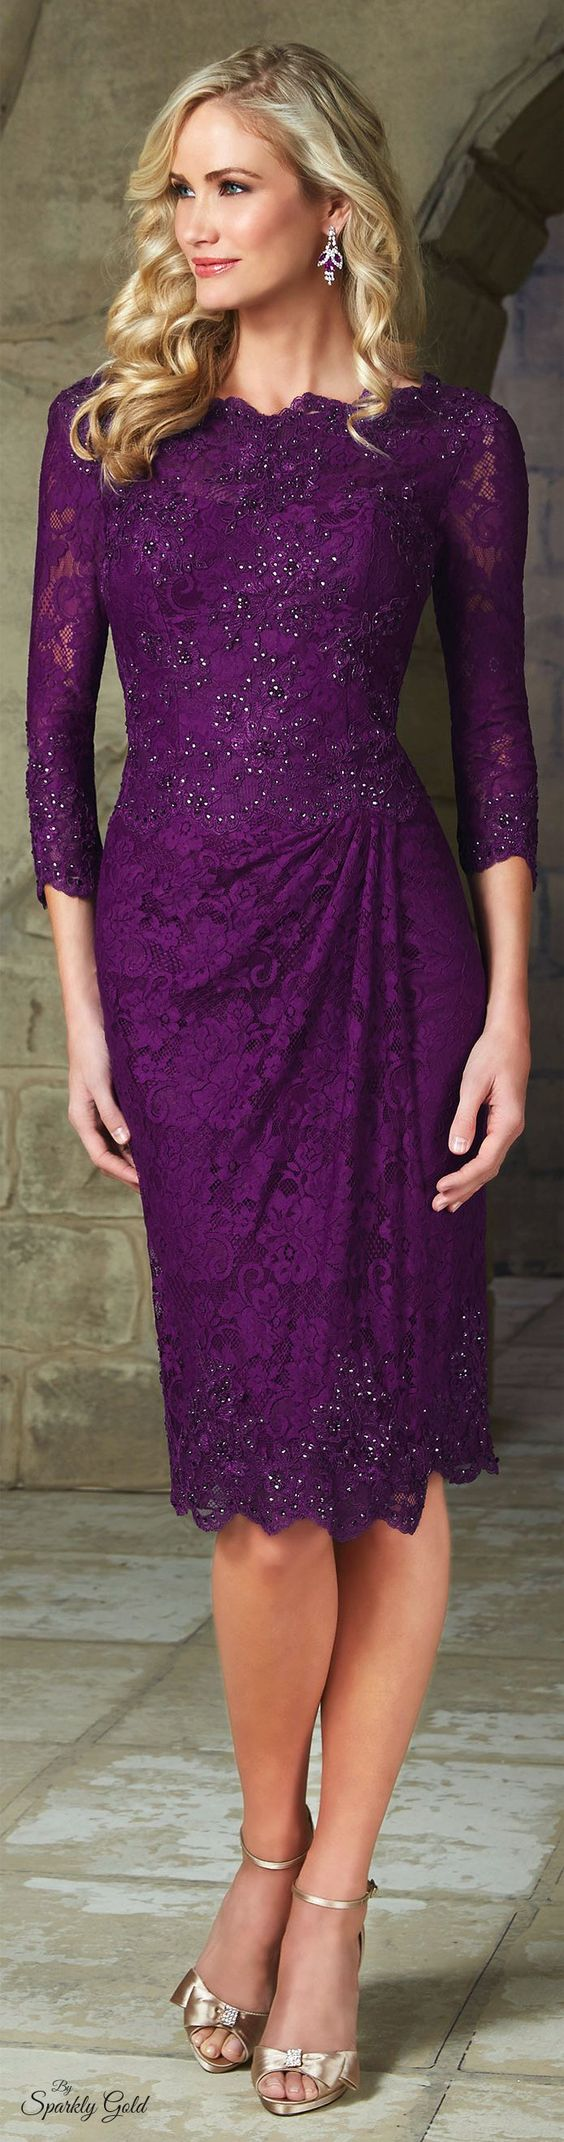 Purple mother of the bride dresses. Long 3/4 sleeve